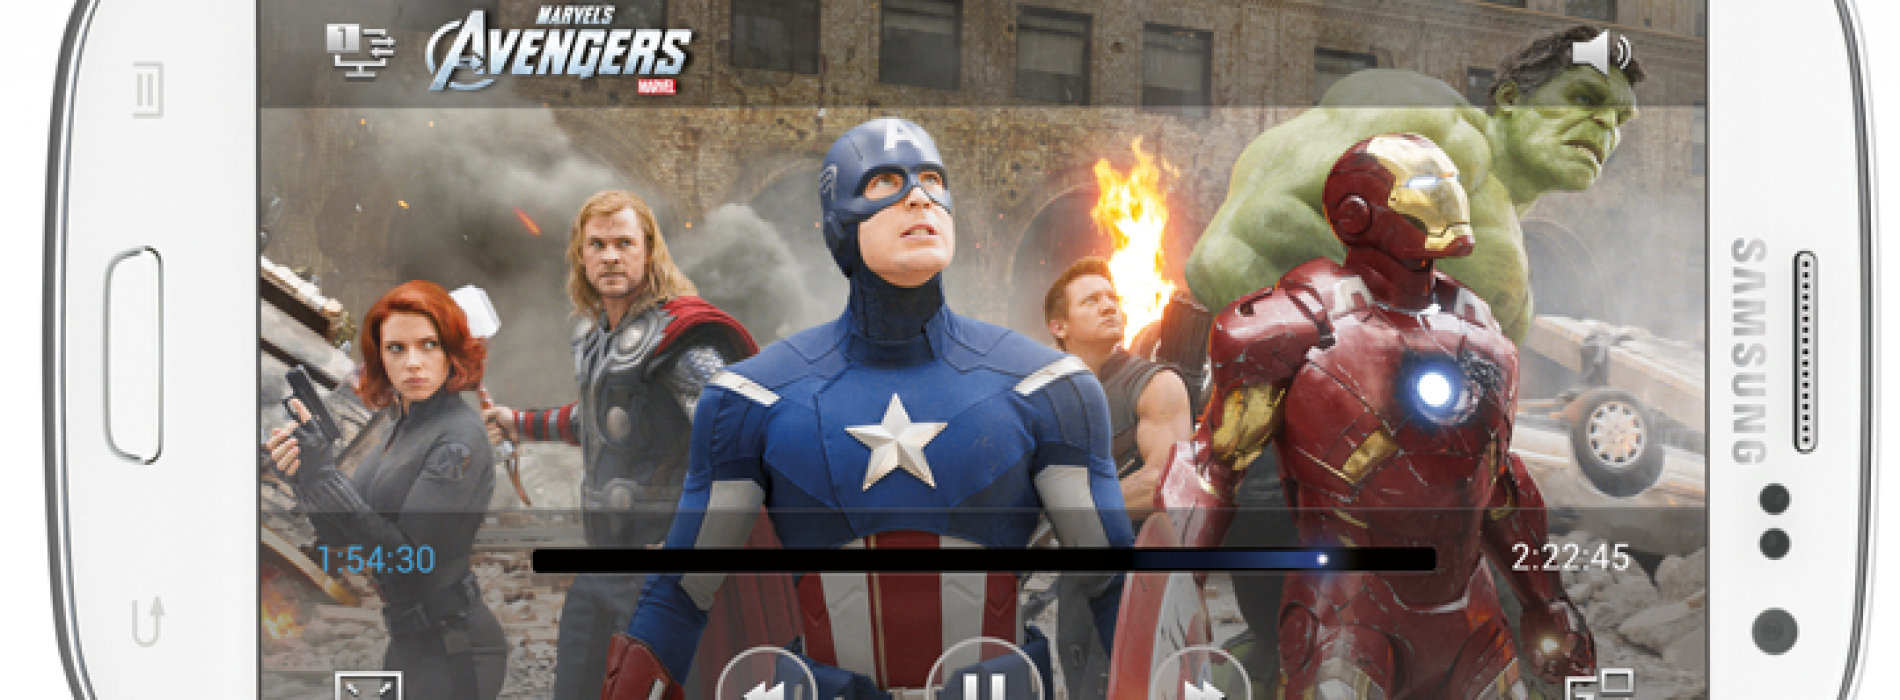 T-Mobile Galaxy S III scores The Avengers as virtual pre-loaded film